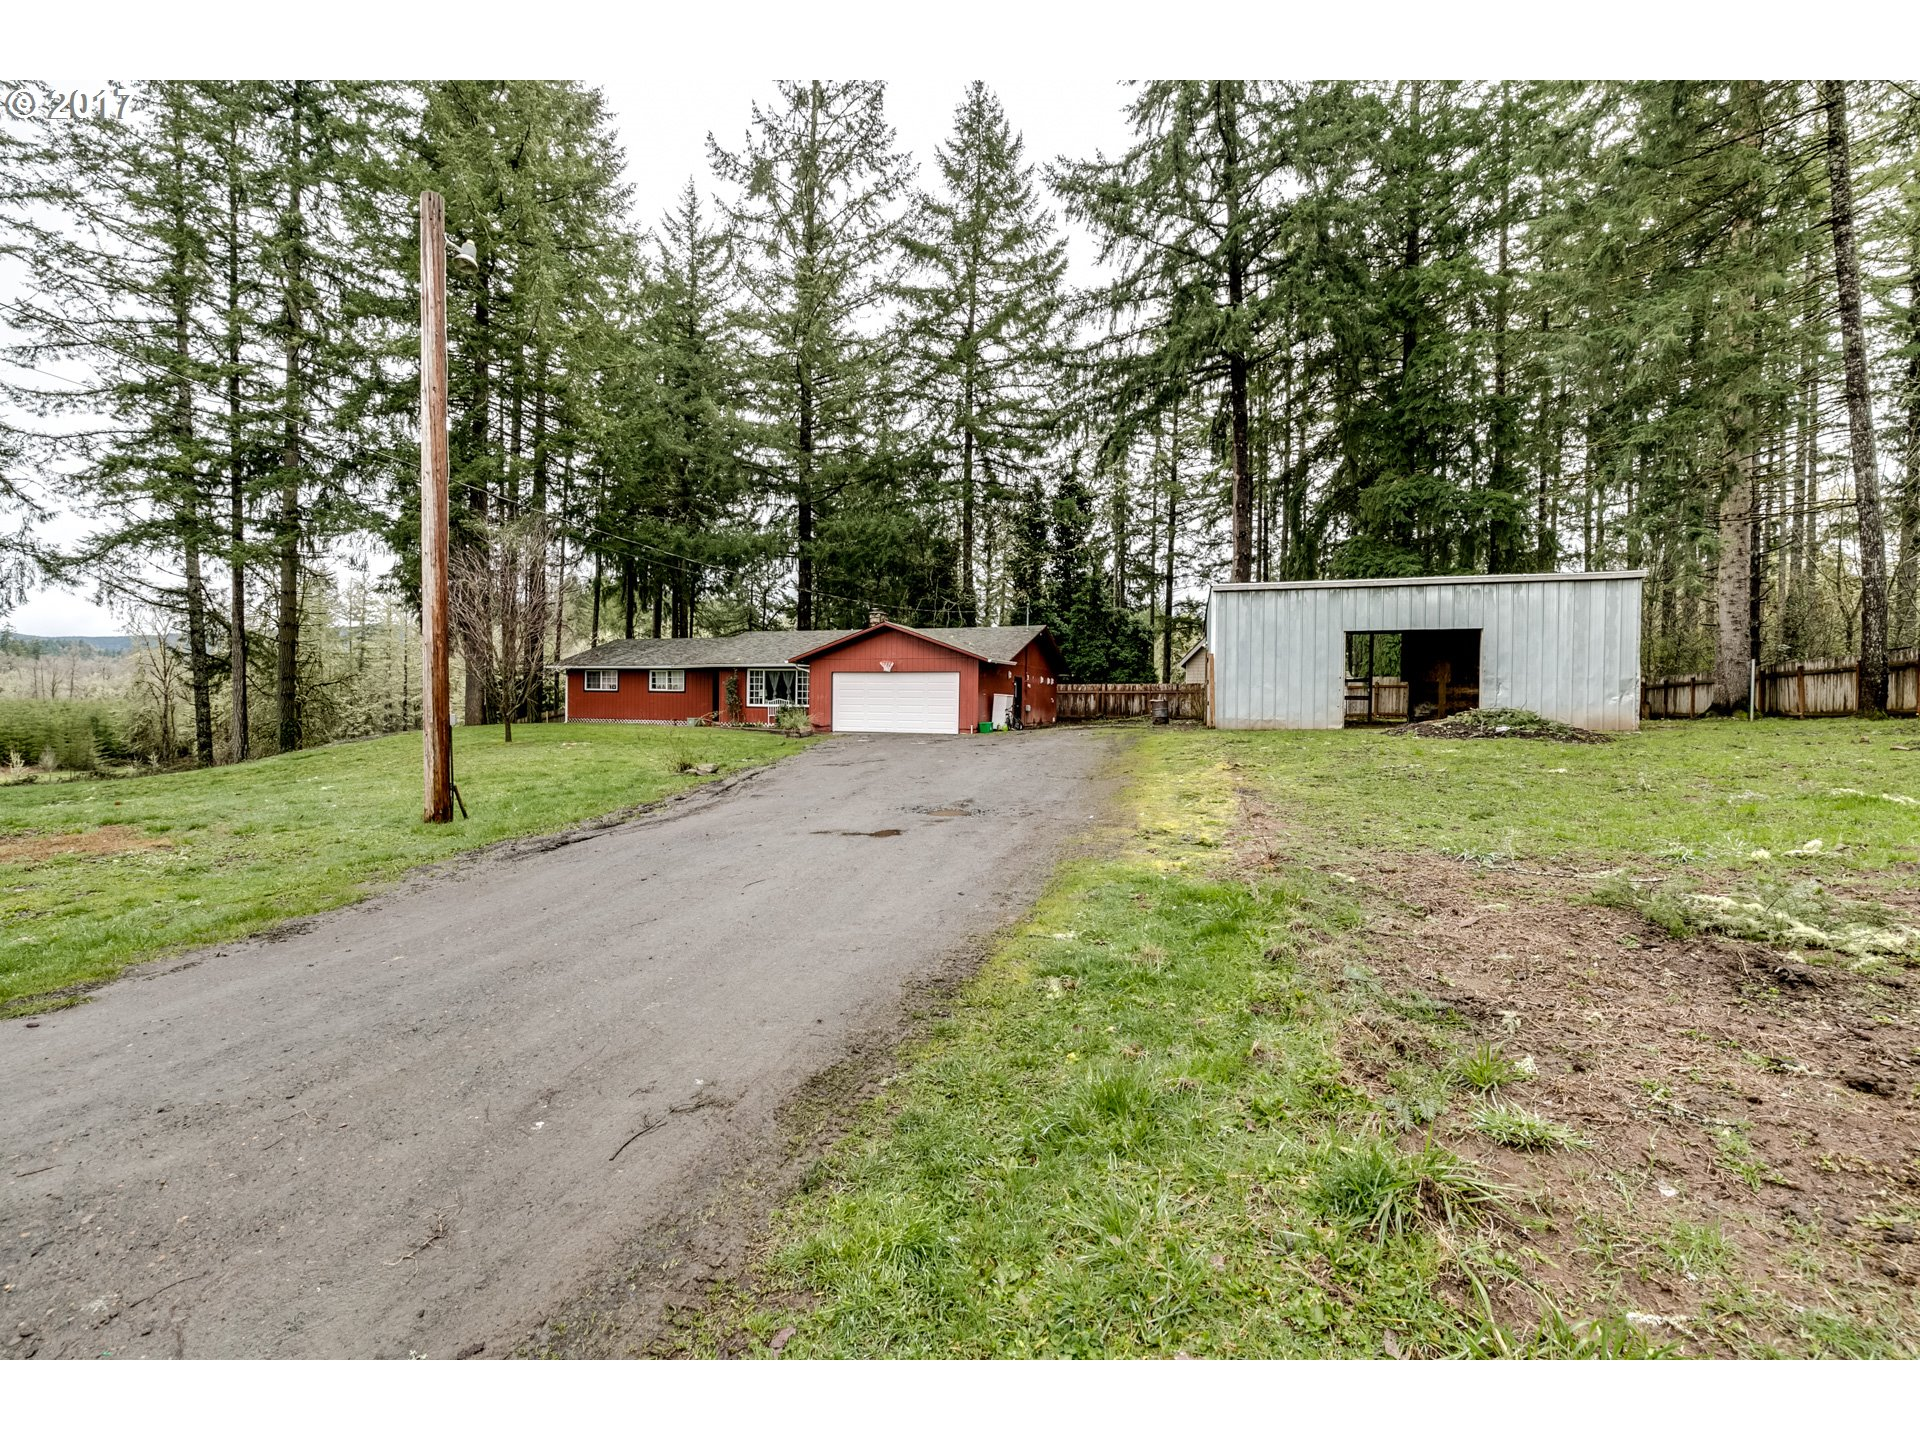 1627 sq. ft 3 bedrooms 2 bathrooms  House For Sale,Cottage Grove, OR